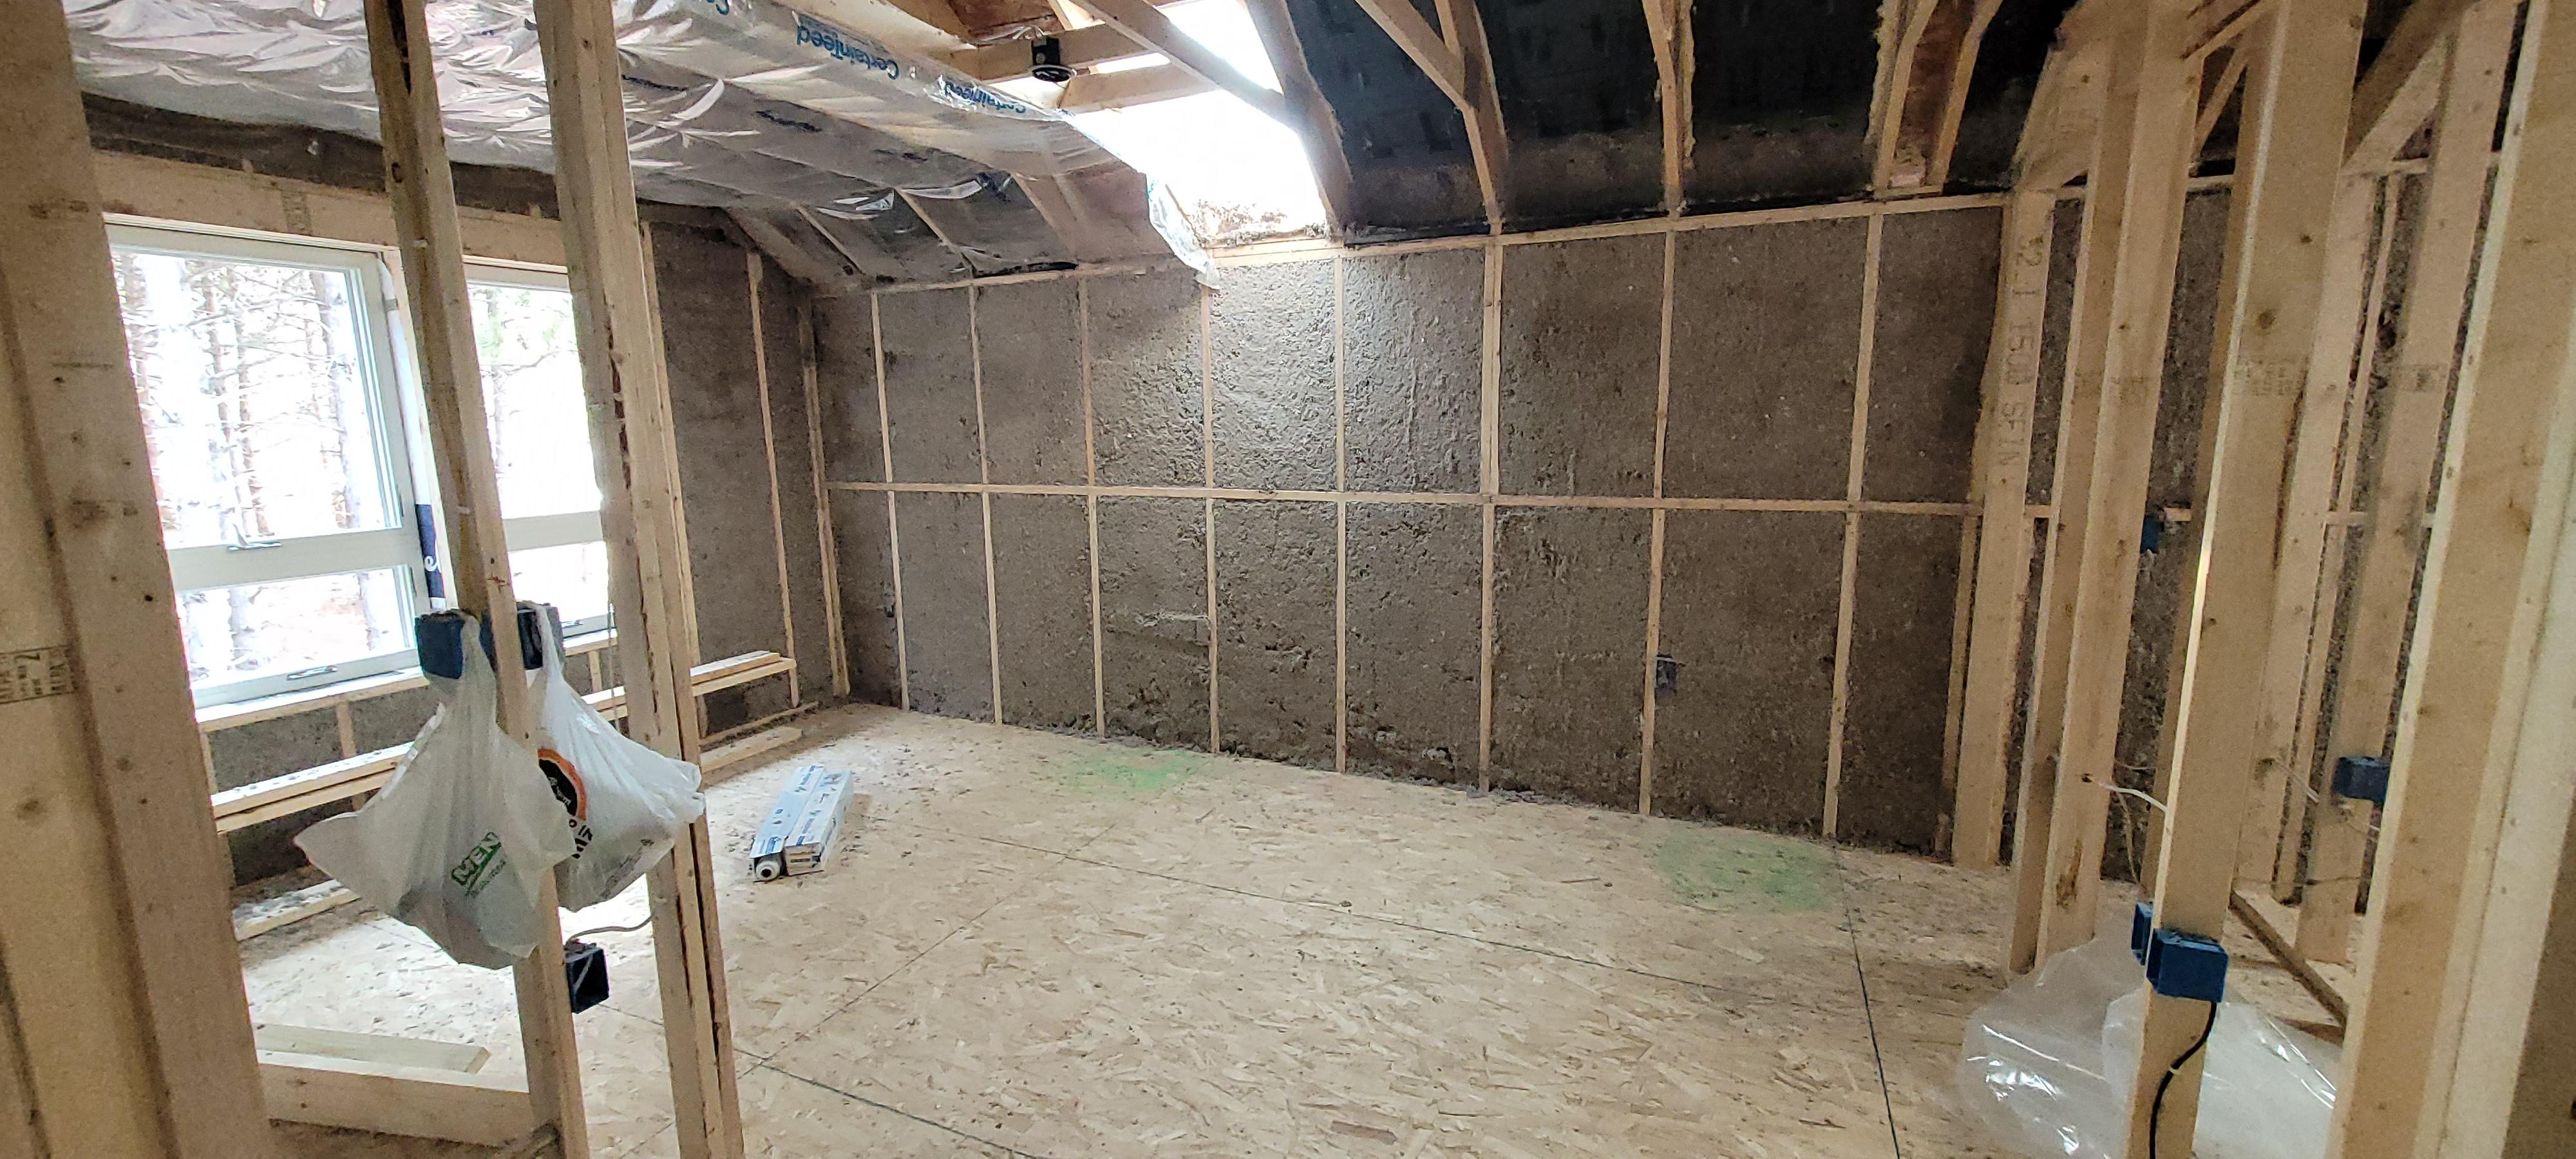 Cellulose Wall Spray Insulation Completed Job